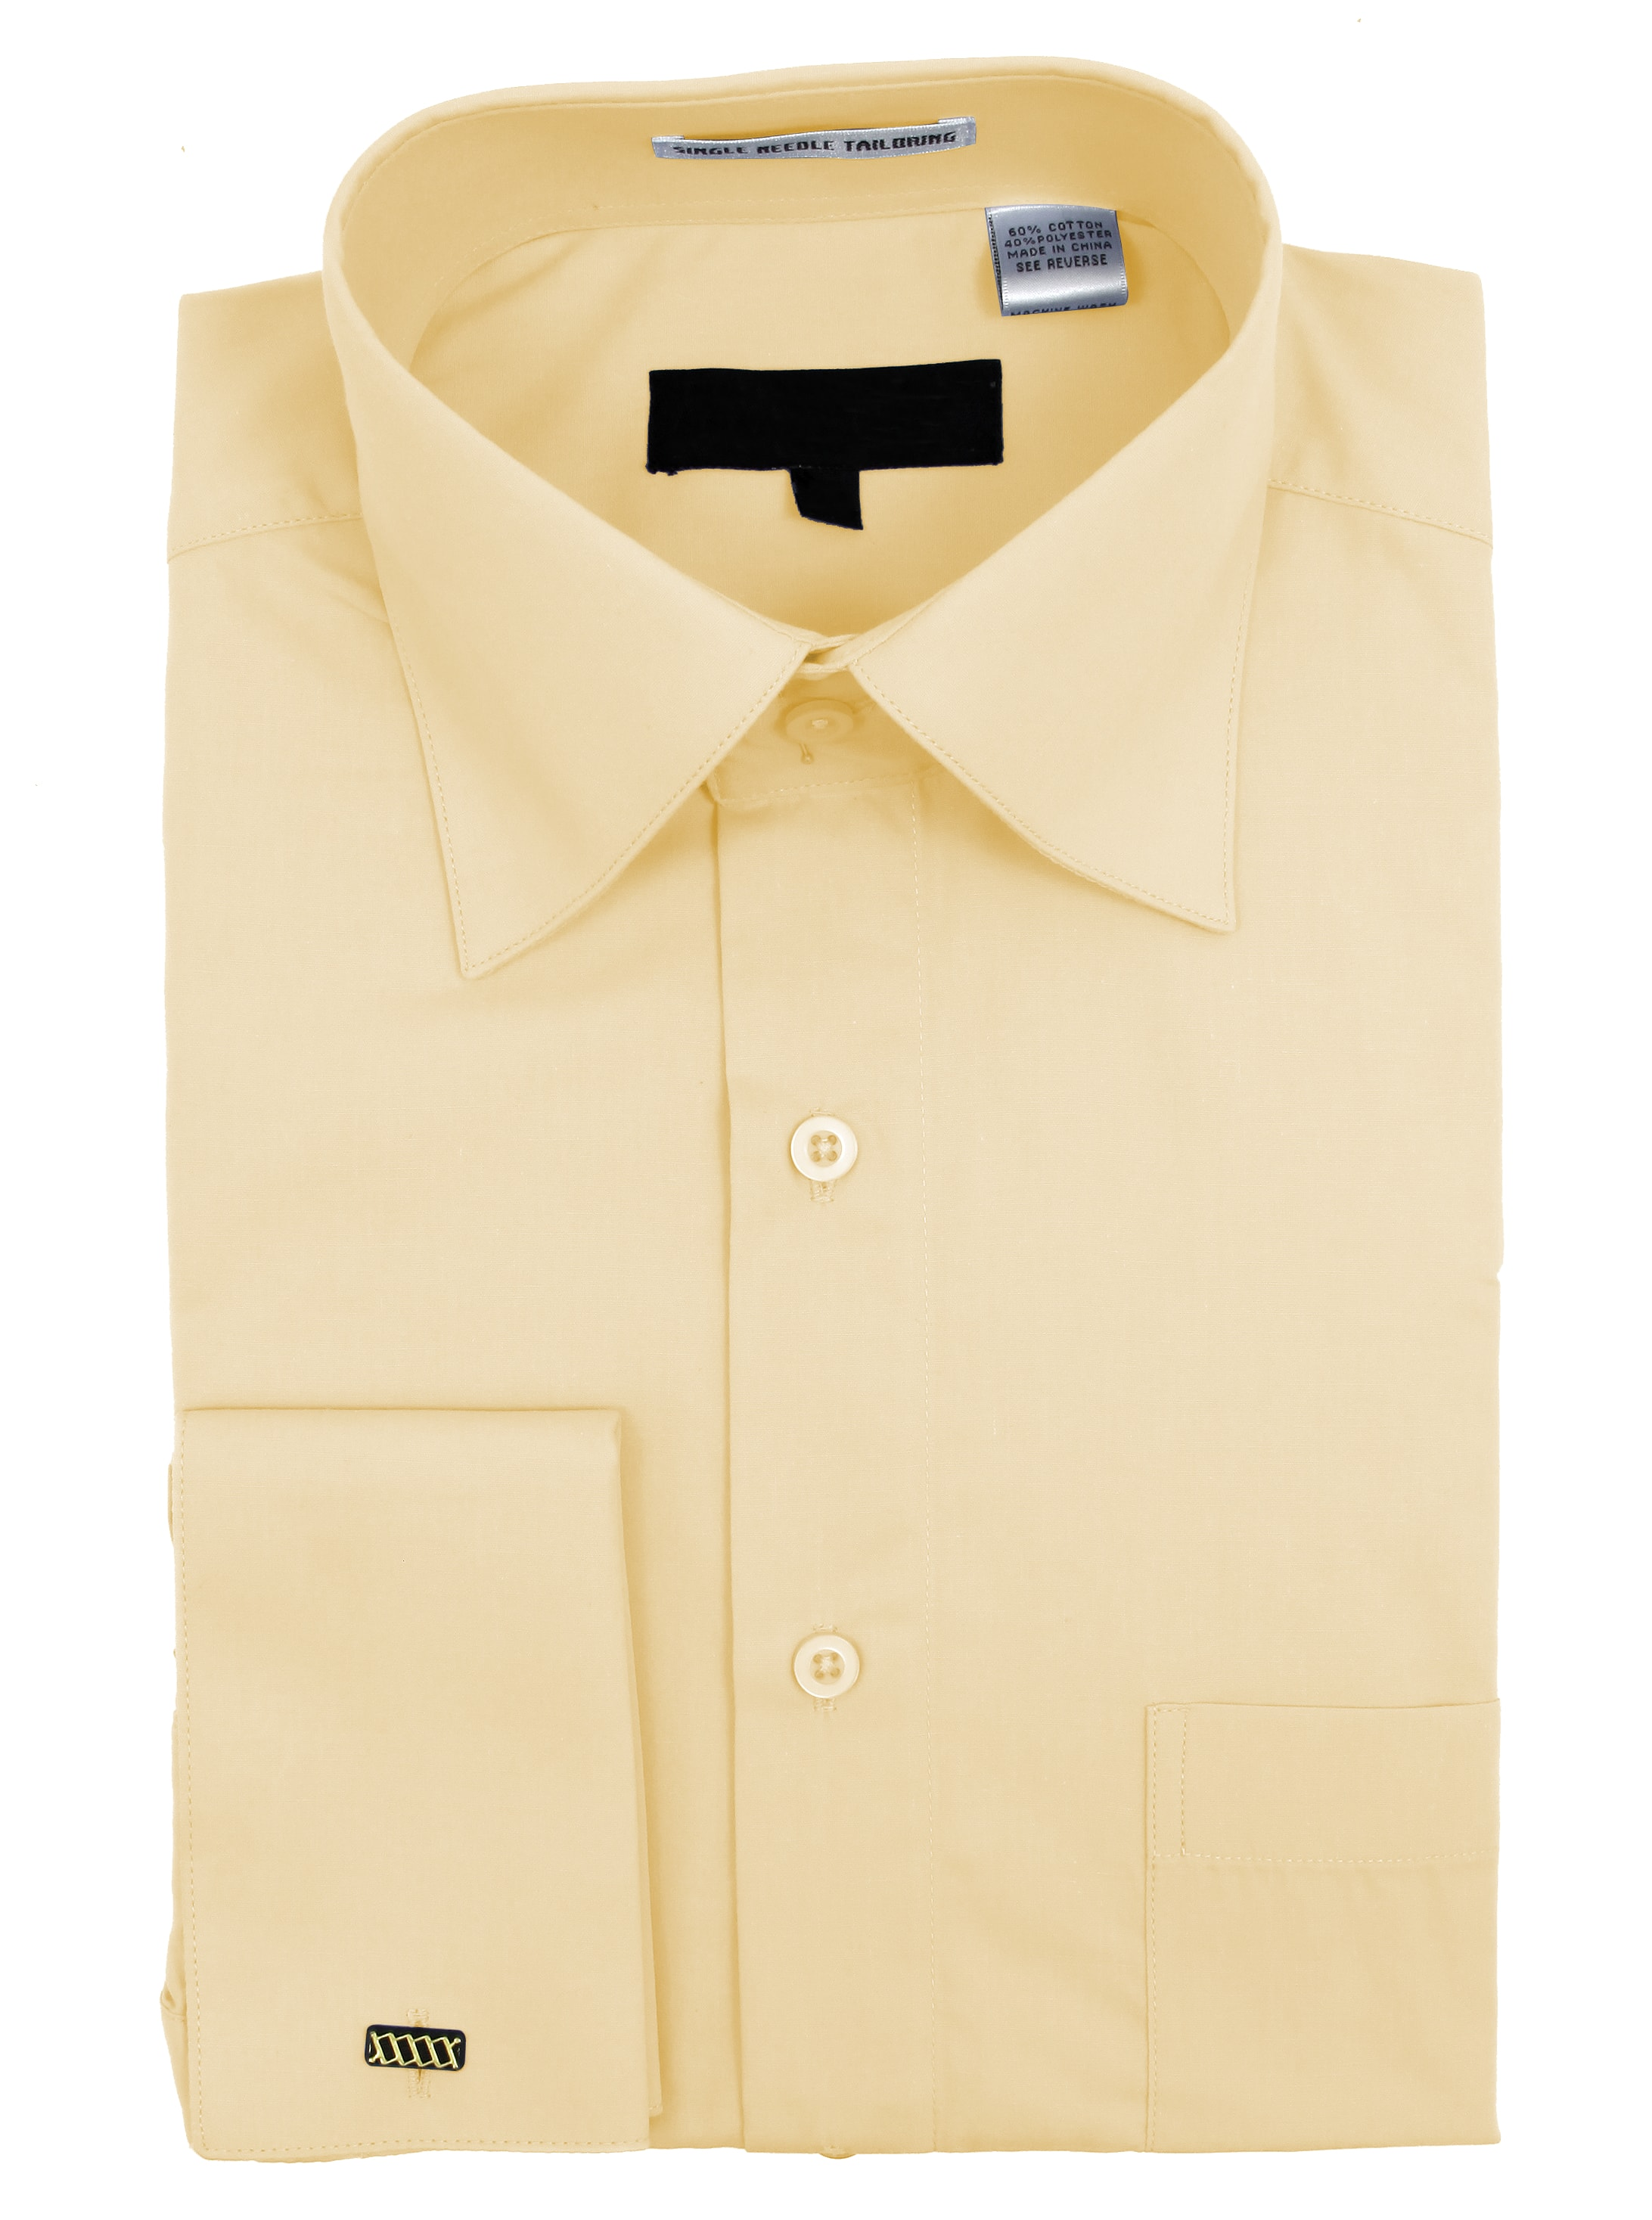 Men/'s Wrinkle Free Cotton Blend French Cuff Dress Shirts